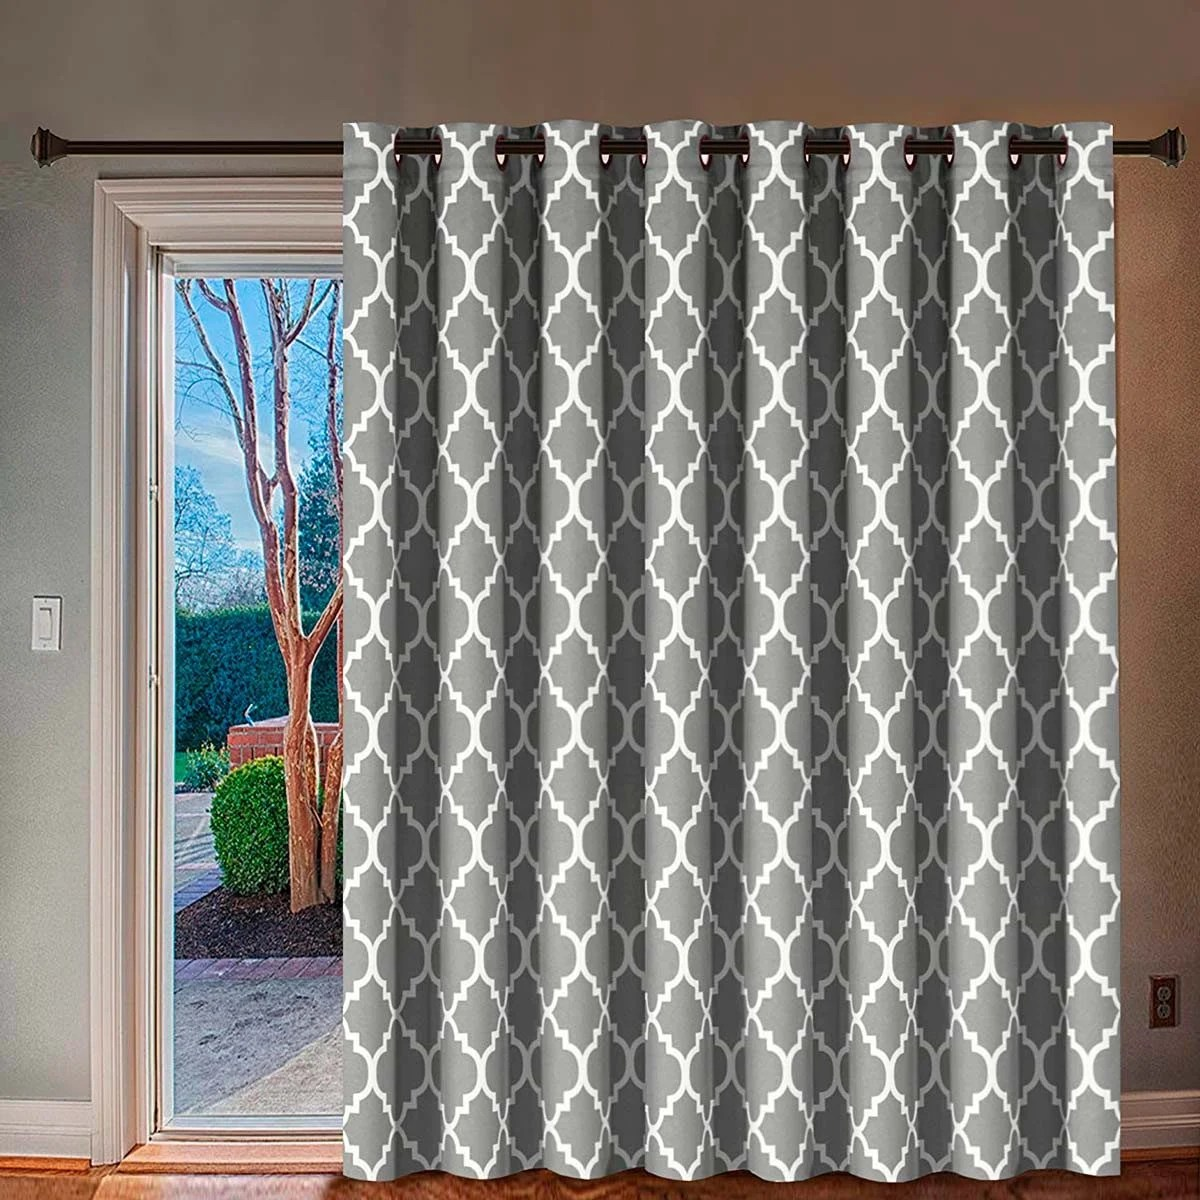 Curtain Ideas Patio Door Curtain Ideas For Different Needs And Tastes Family